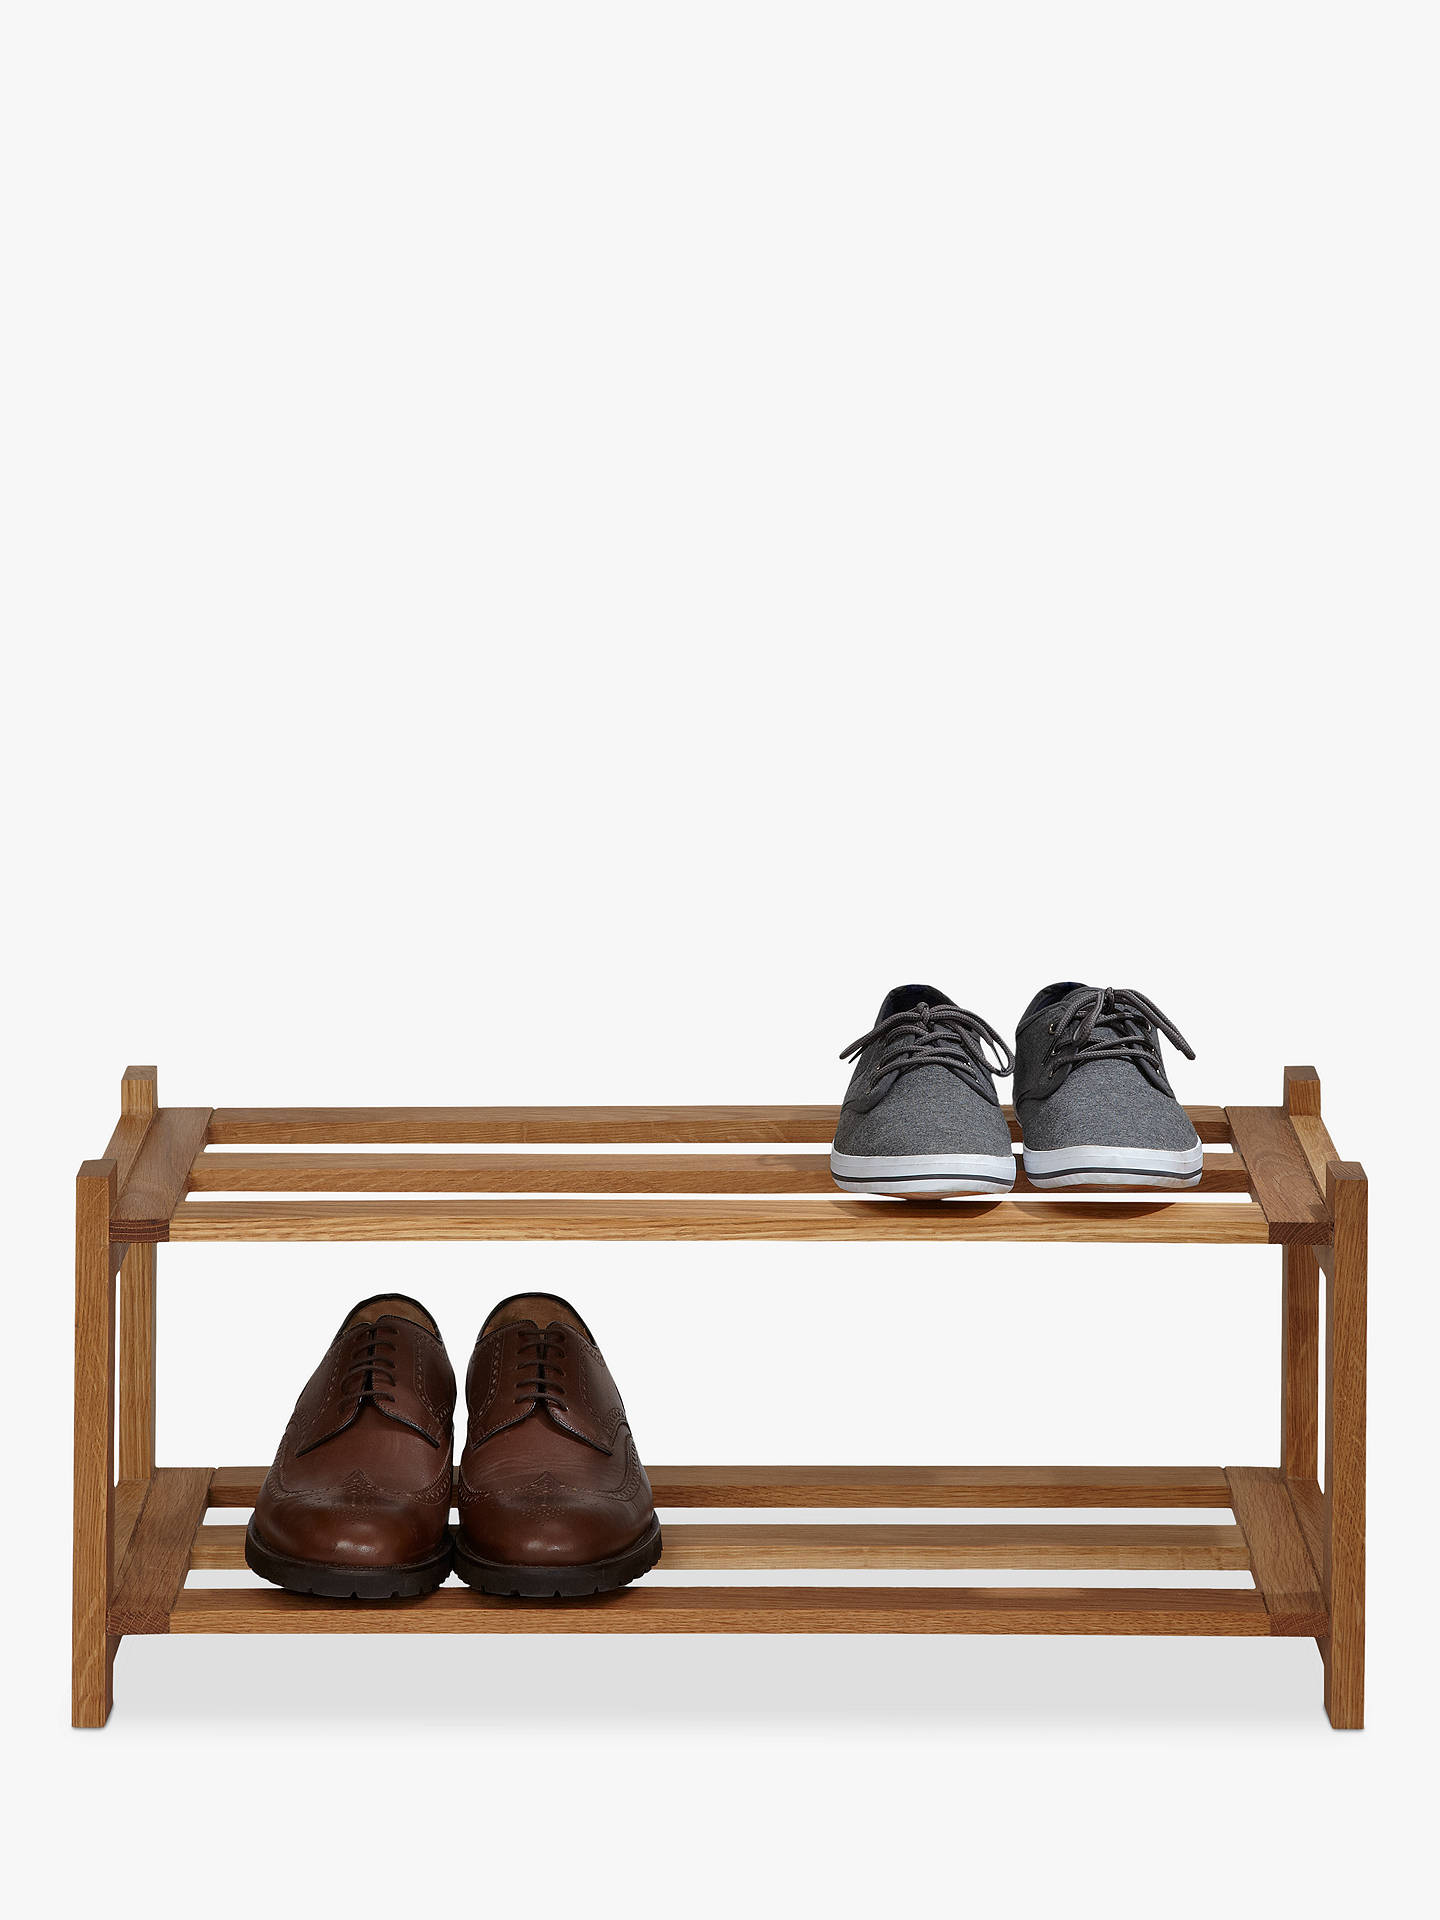 BuyJohn Lewis & Partners Oak Wood Shoe Rack, 2 Tier Online at johnlewis.com